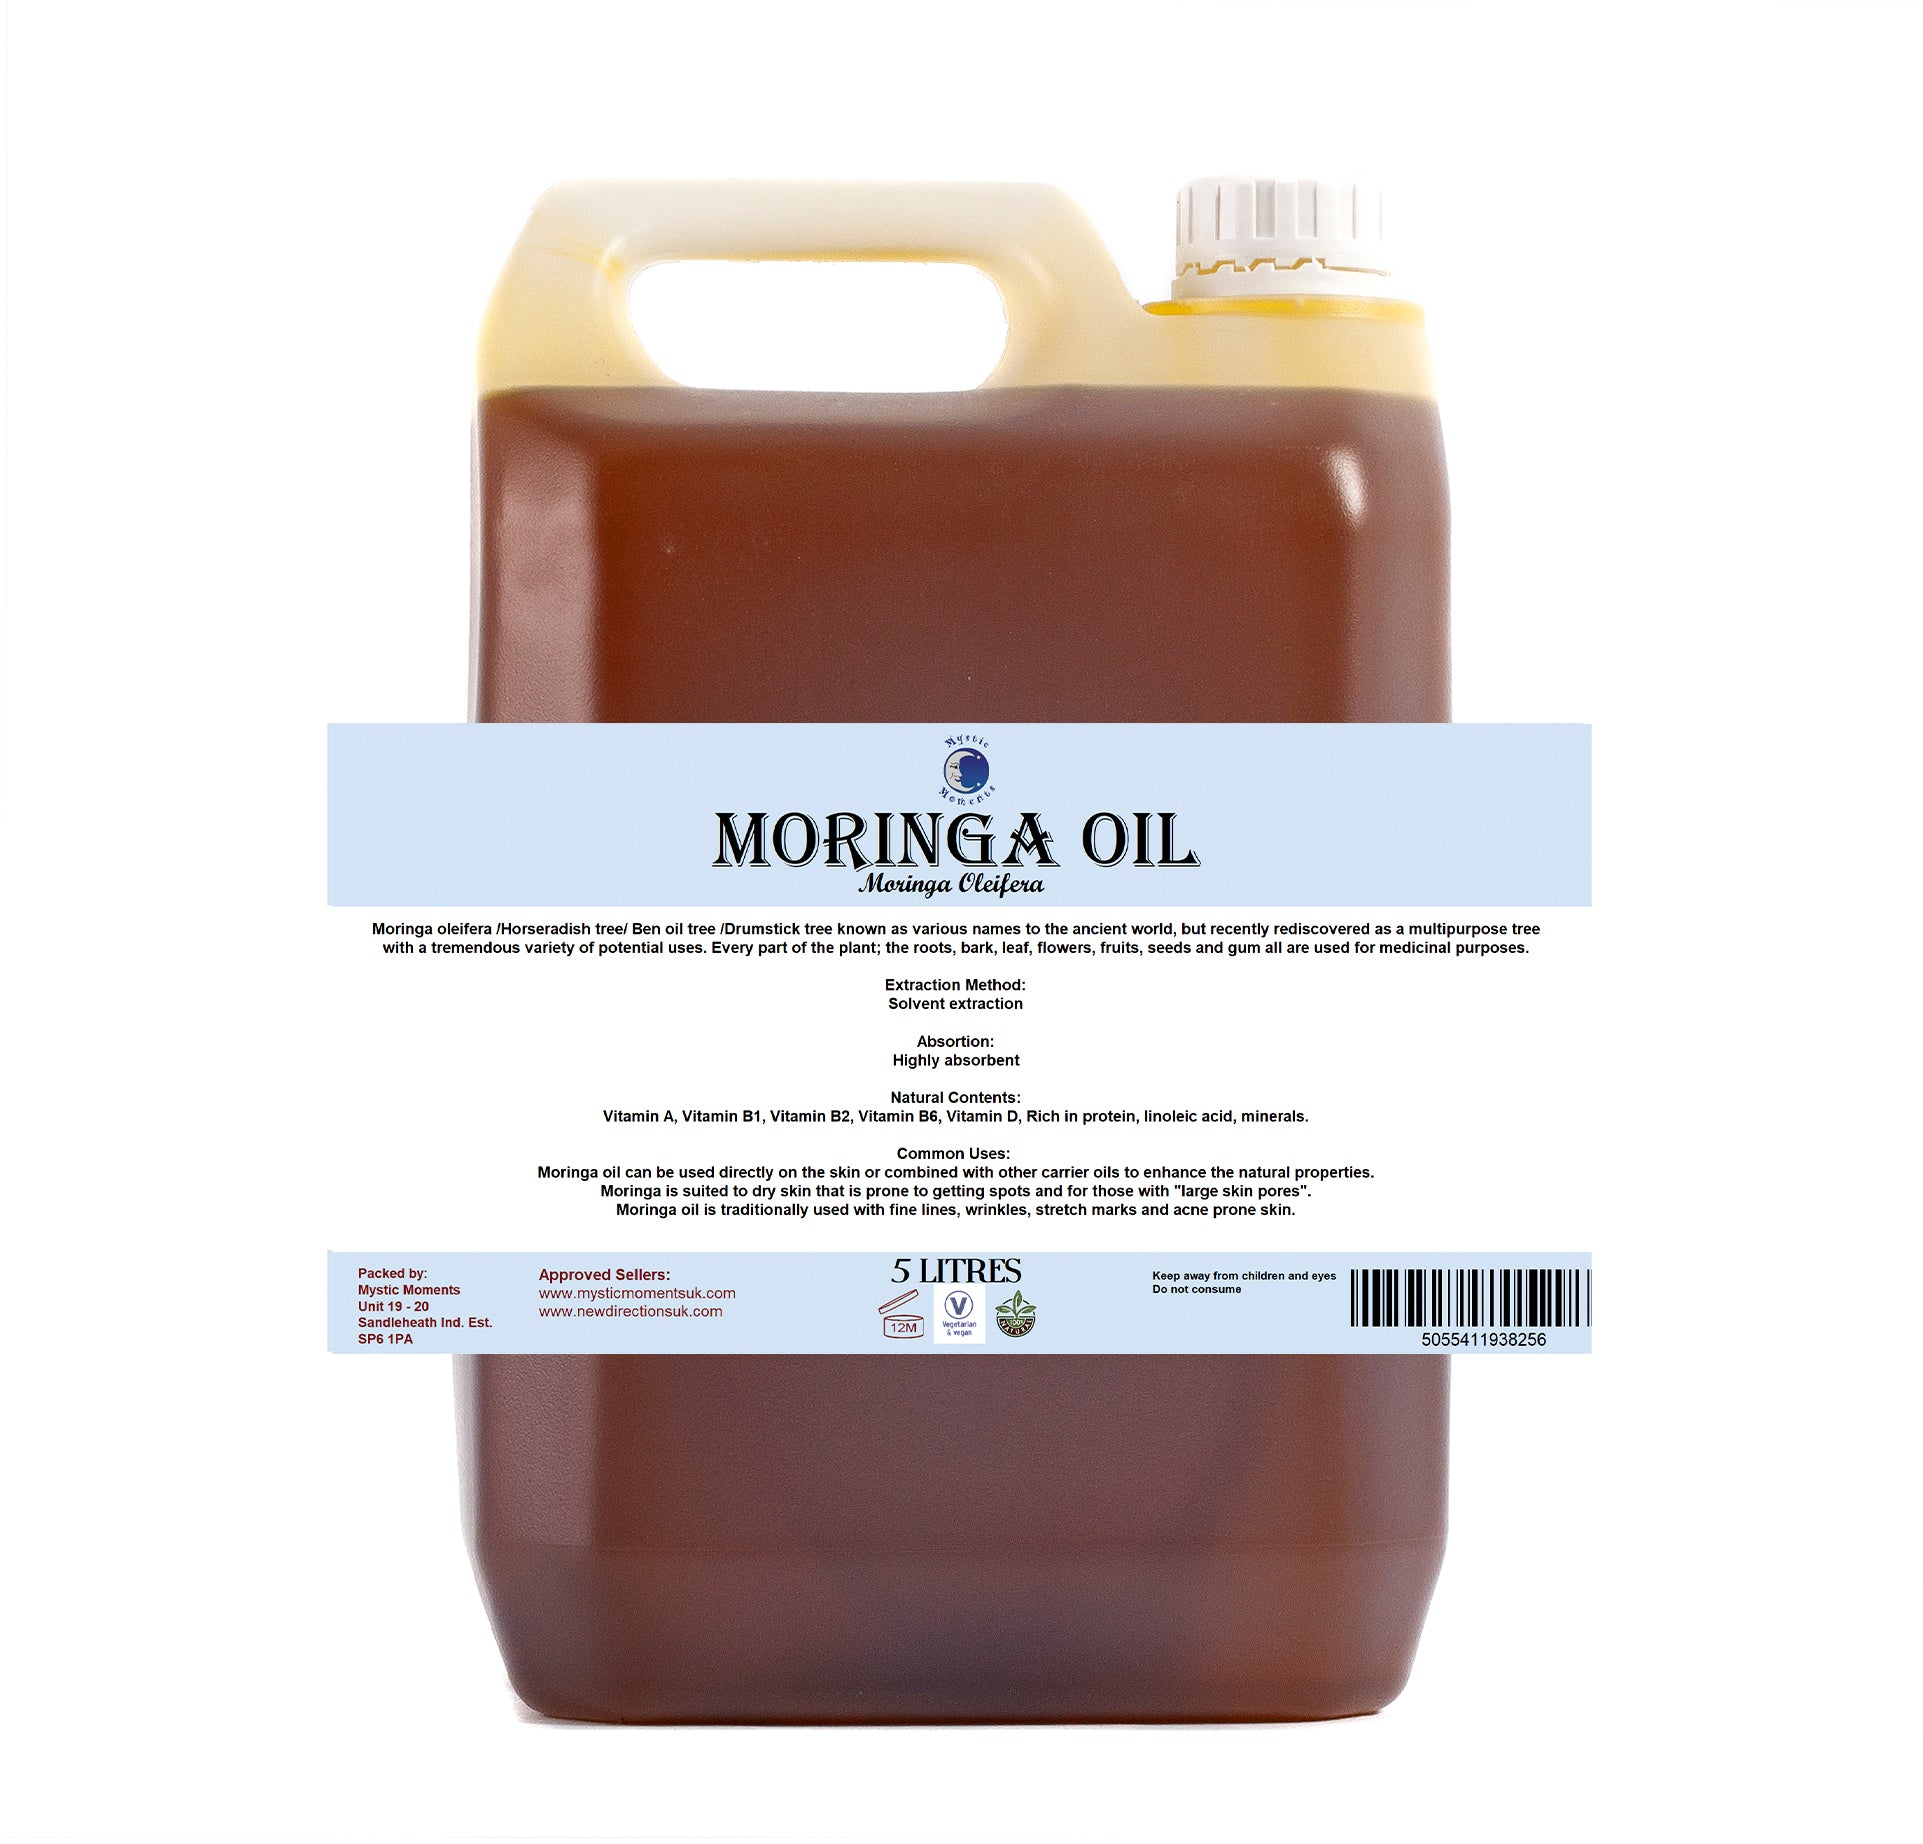 Moringa (Drumstick) Carrier Oil